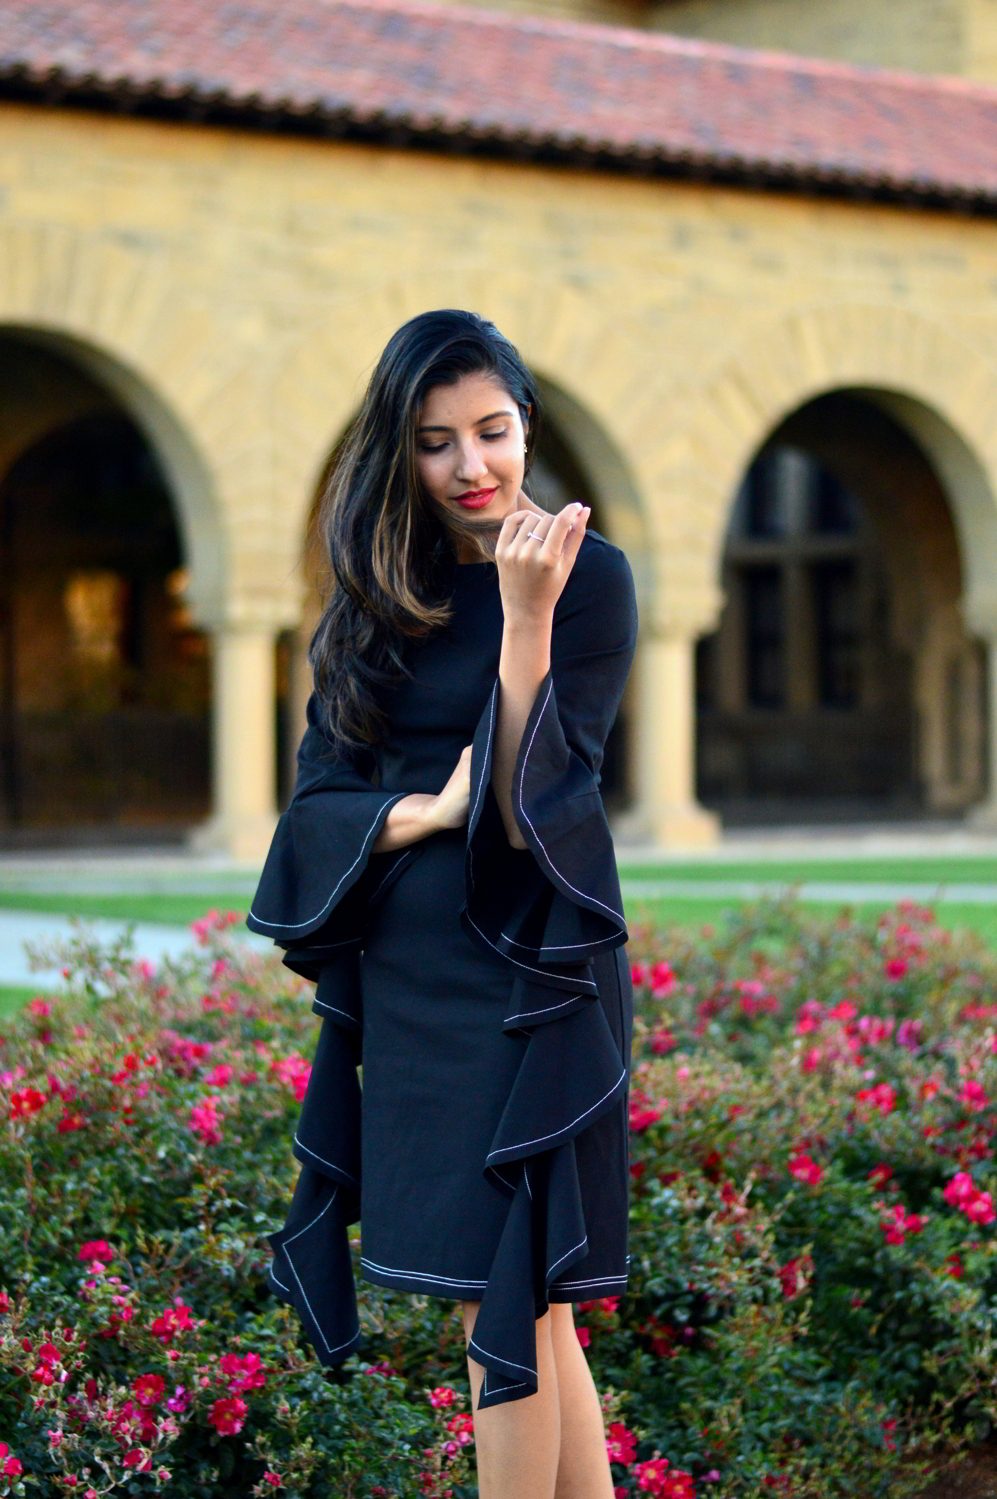 little-black-dress-bell-sleeves-holiday-season-mules-blogger-outfit-style 4